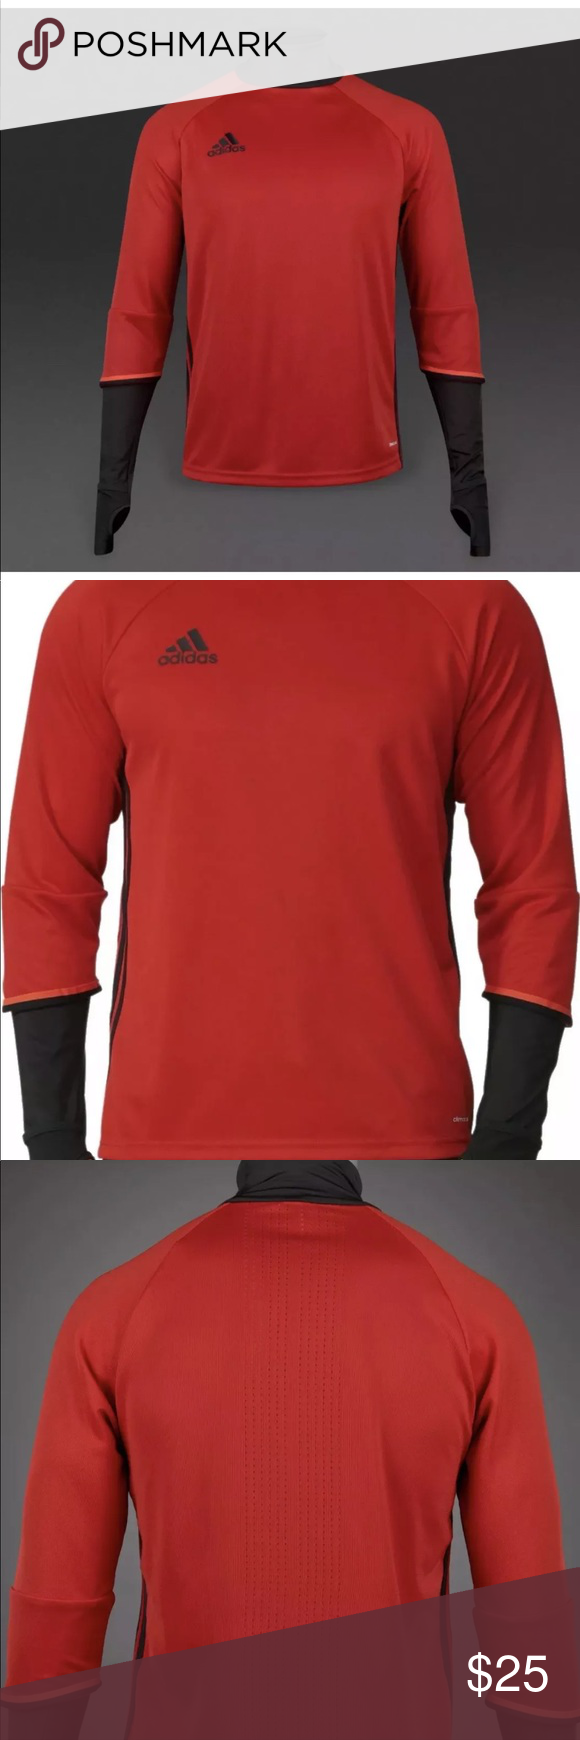 4e0e6a1f0 Adidas Condivo 16 Long Sleeve Soccer 11-12 Youth Adidas Red Black Condivo  16 Long